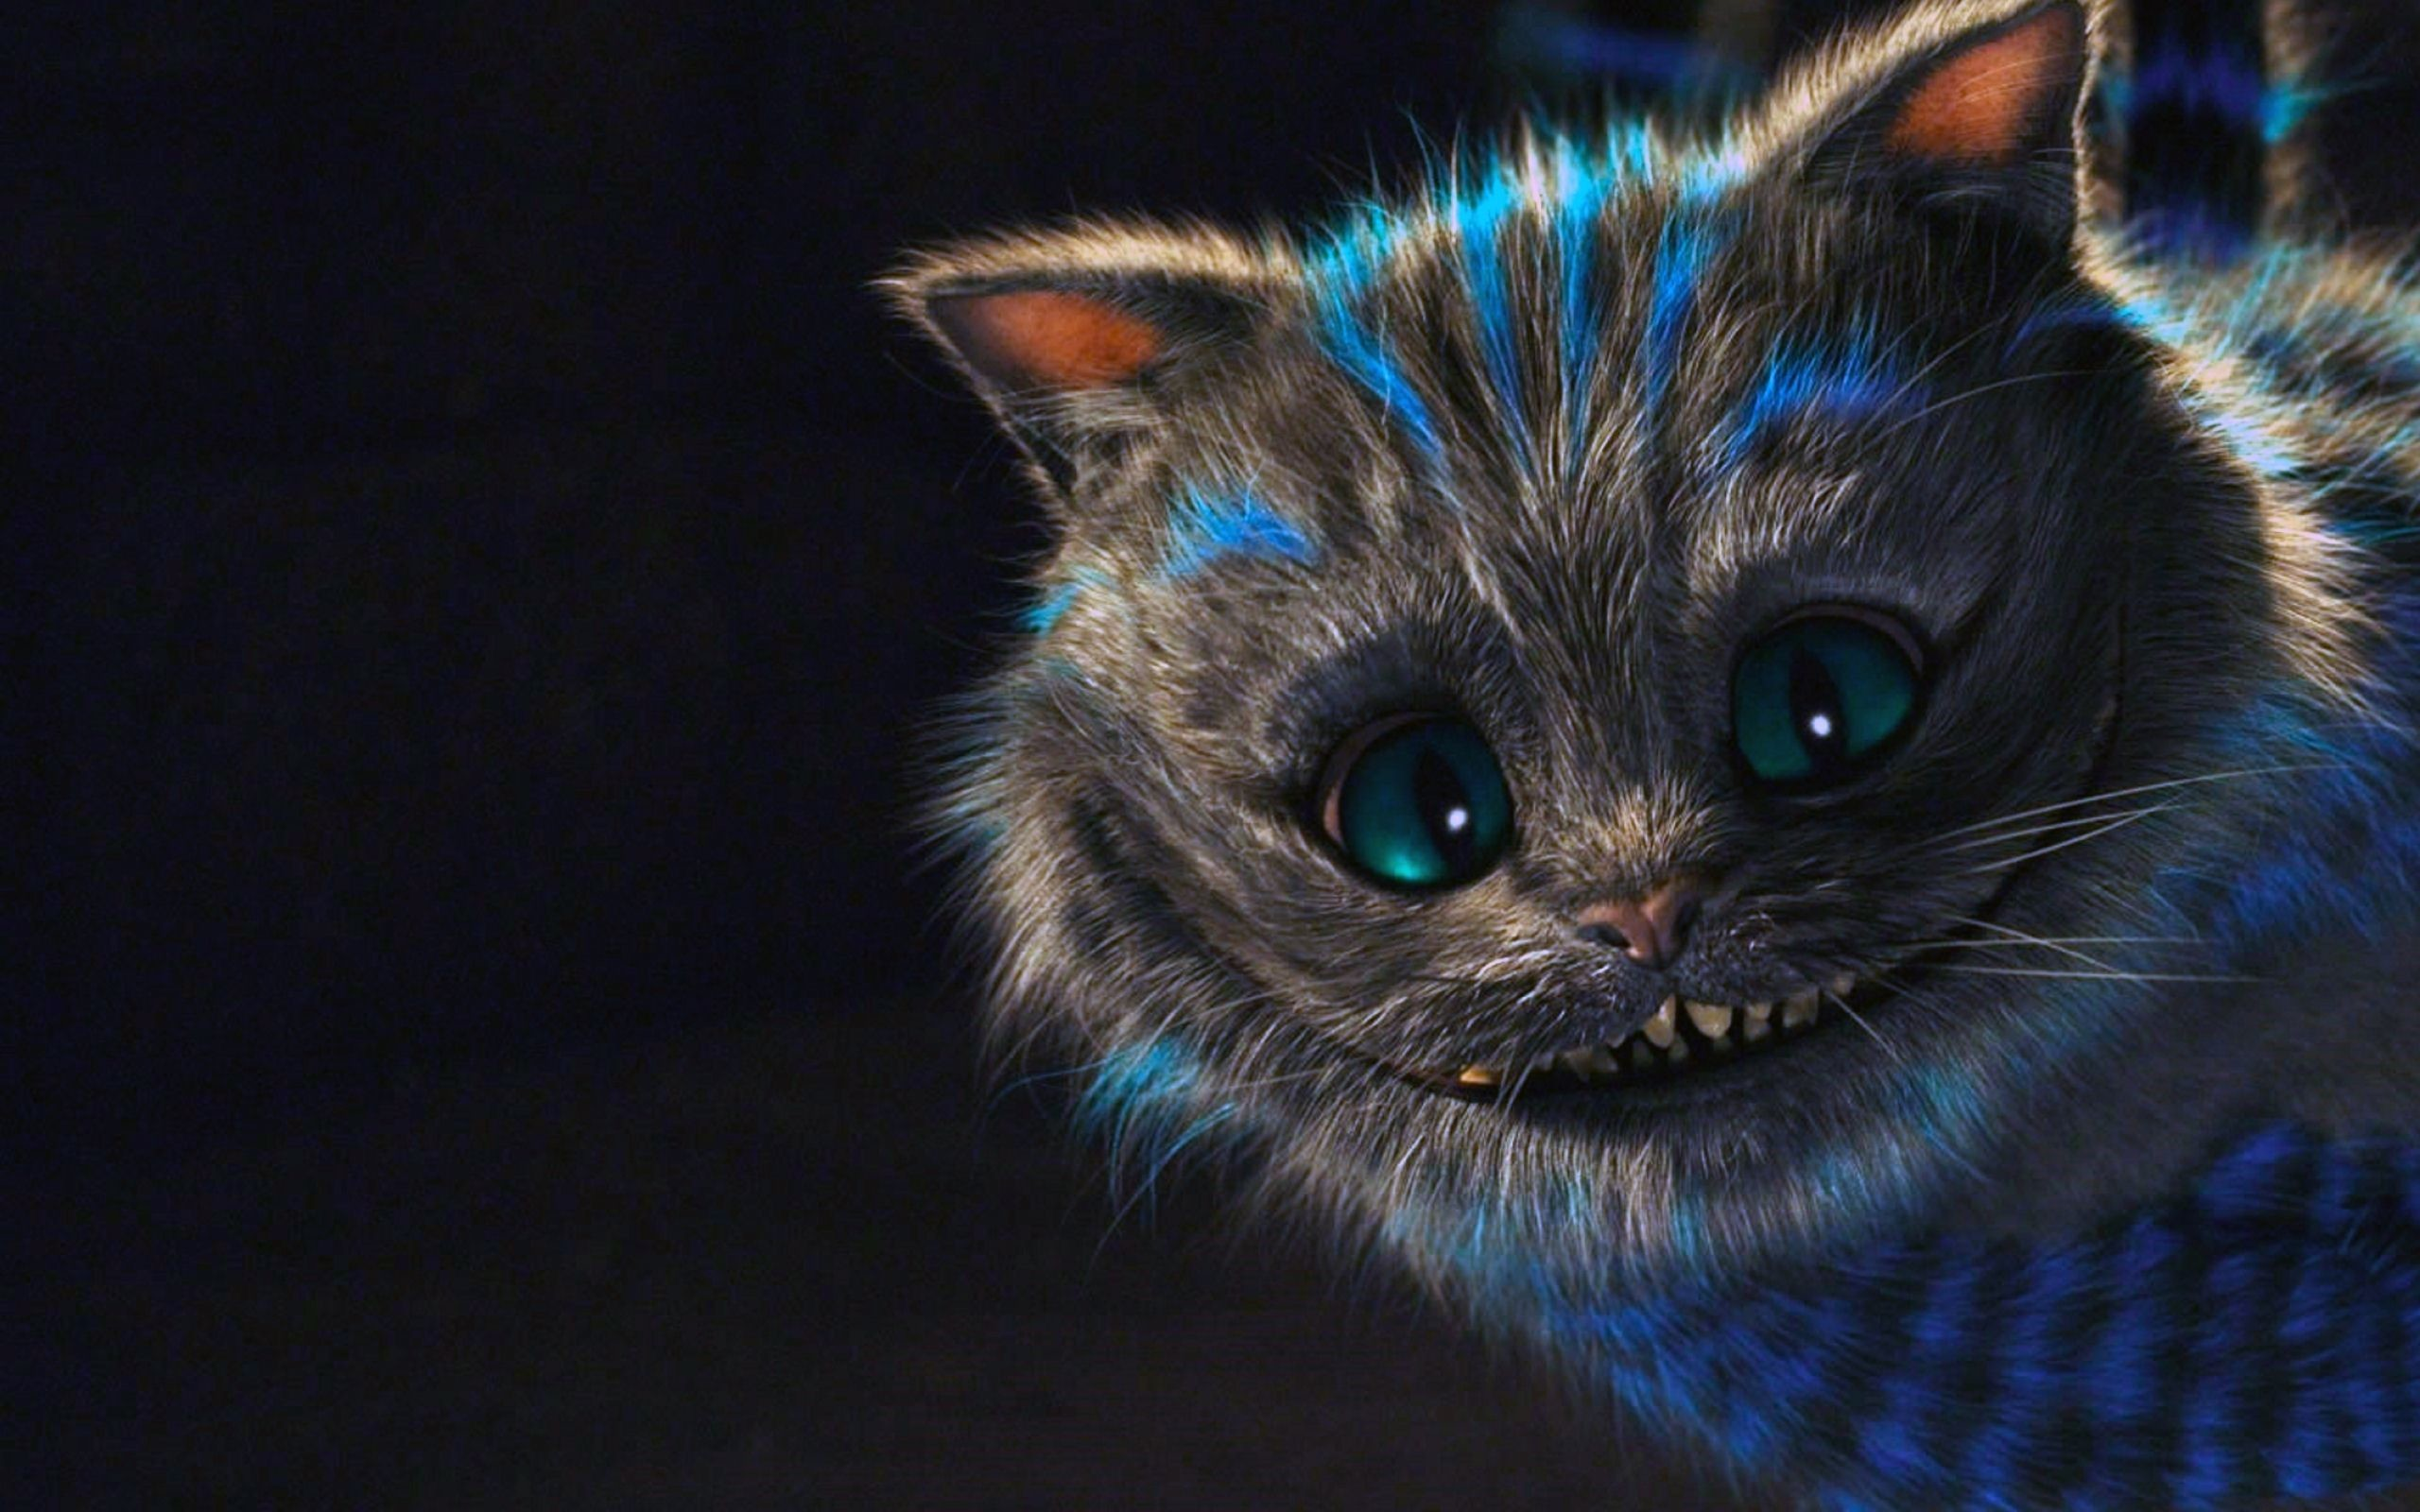 HD cheshire cat pictures tumblr.